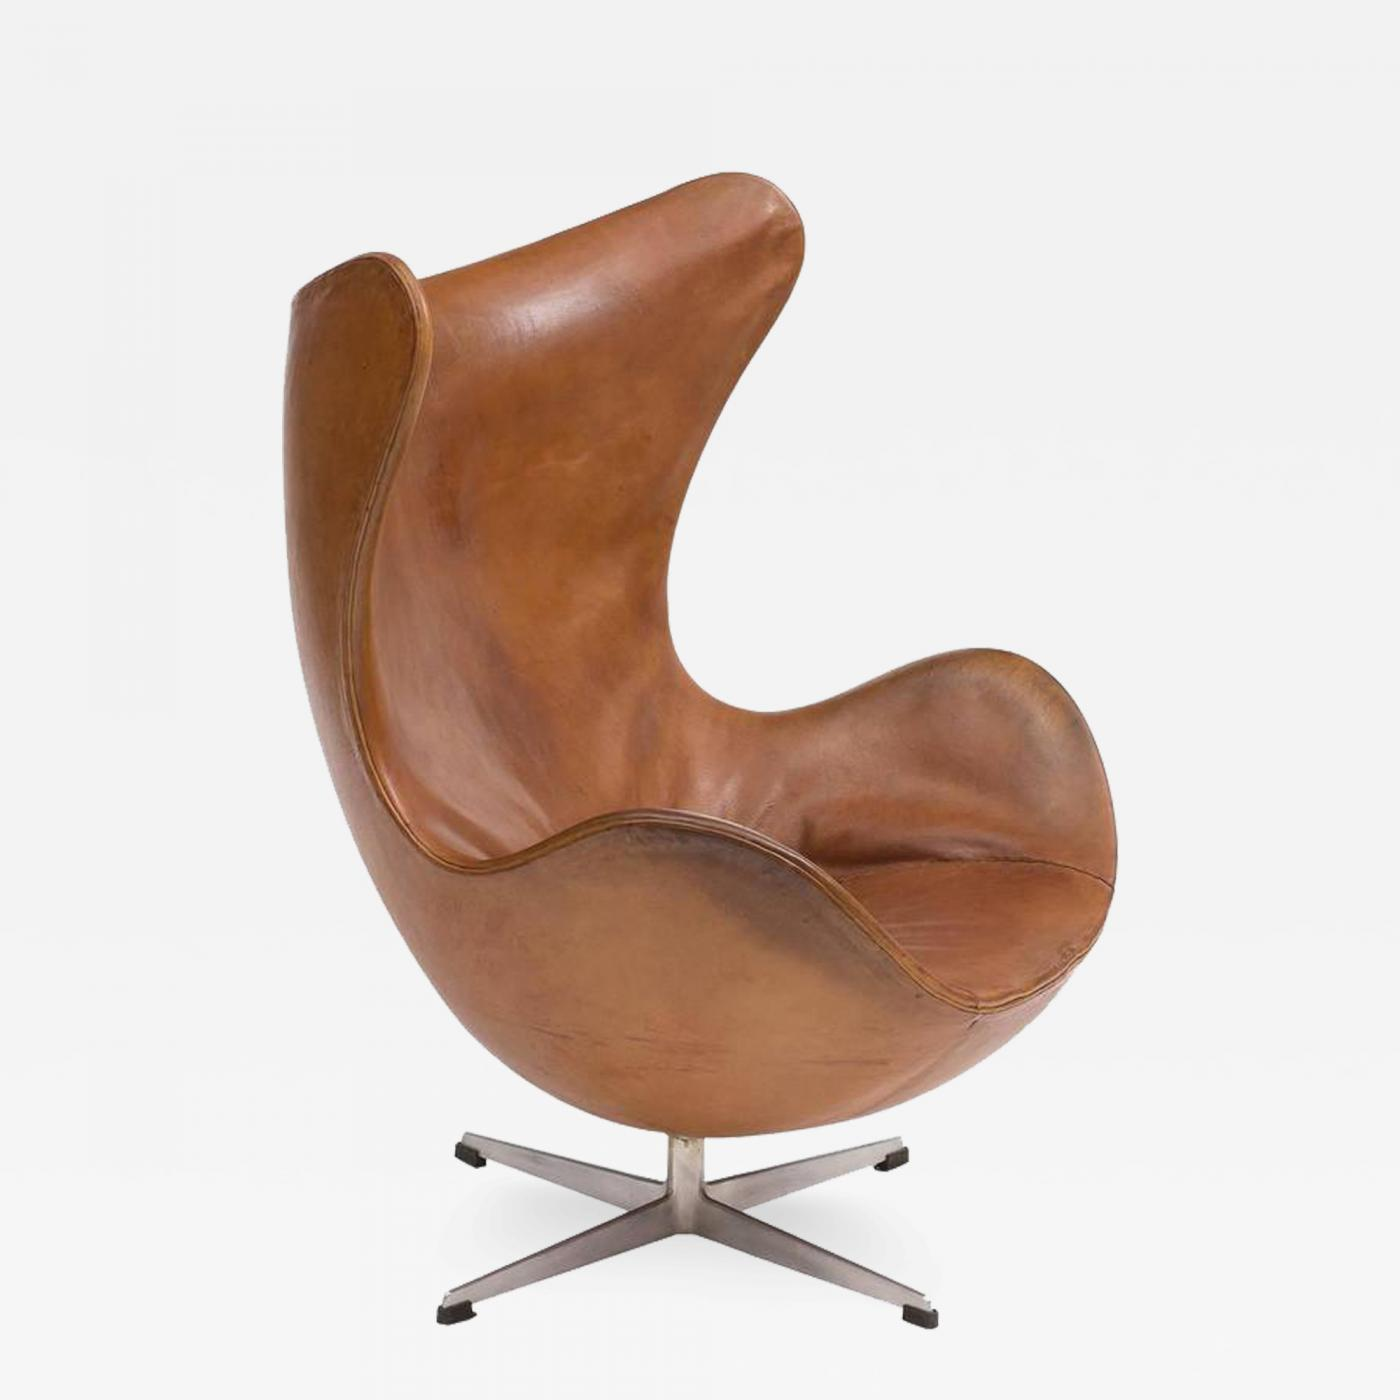 Arne Jacobsen First Edition Egg Chair by Arne Jacobsen Denmark